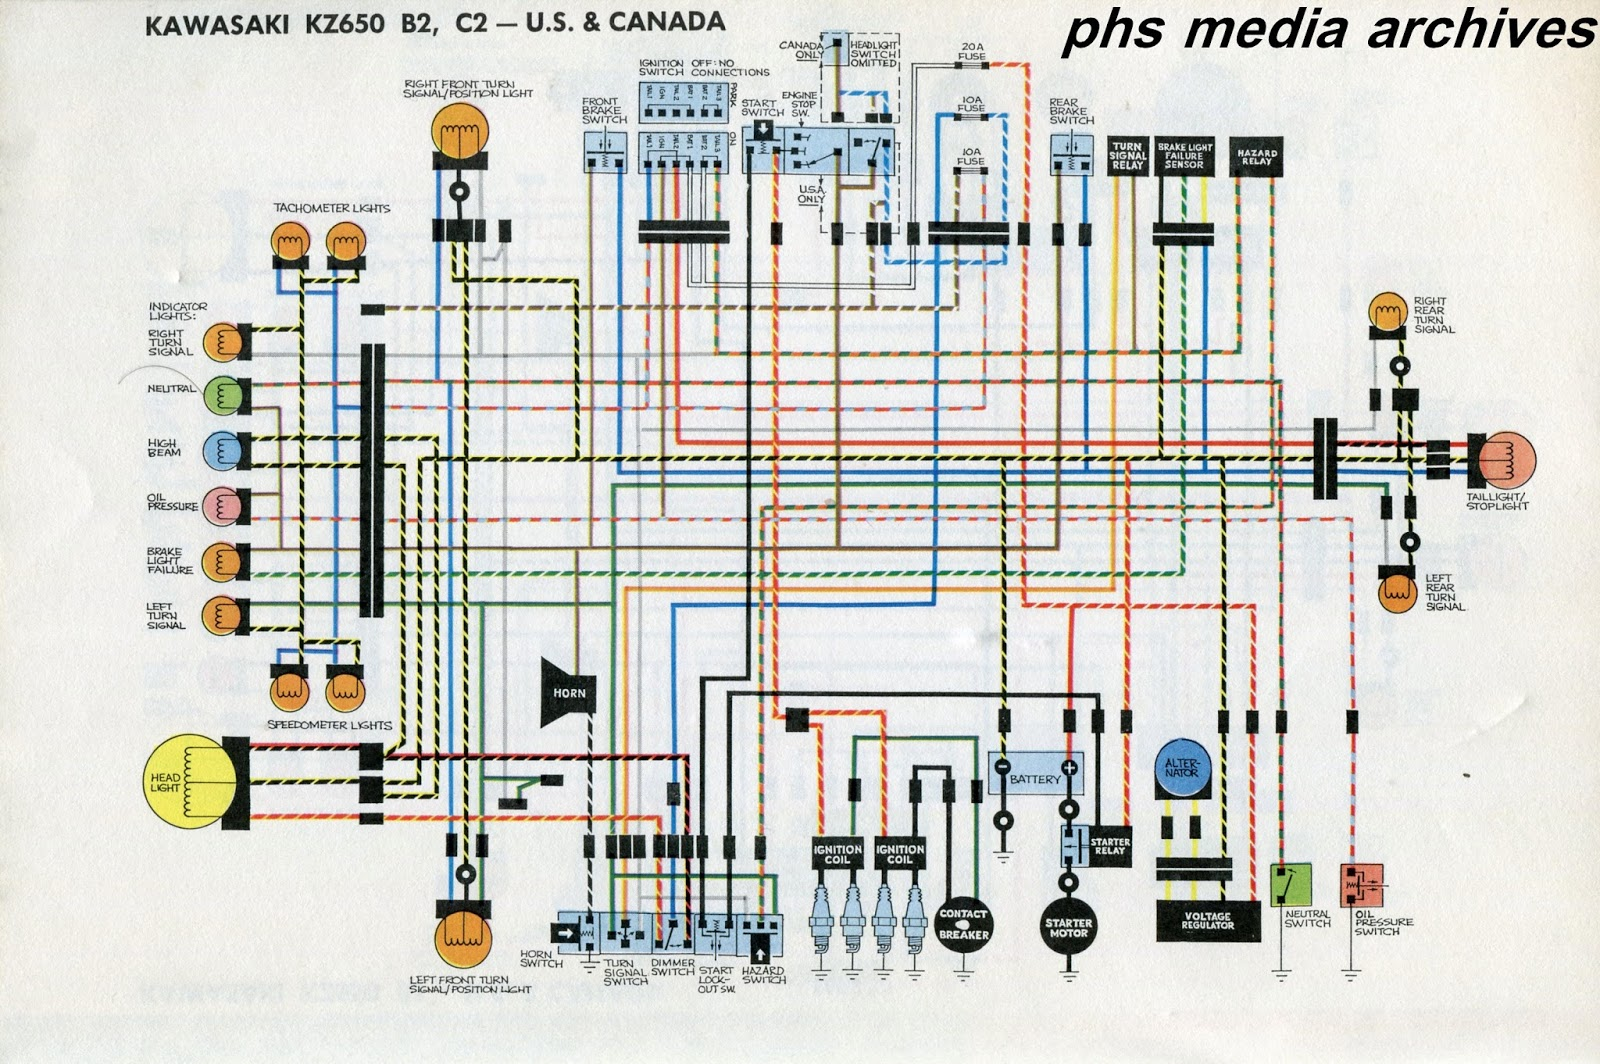 Kz650 Wiring Diagram from 2.bp.blogspot.com